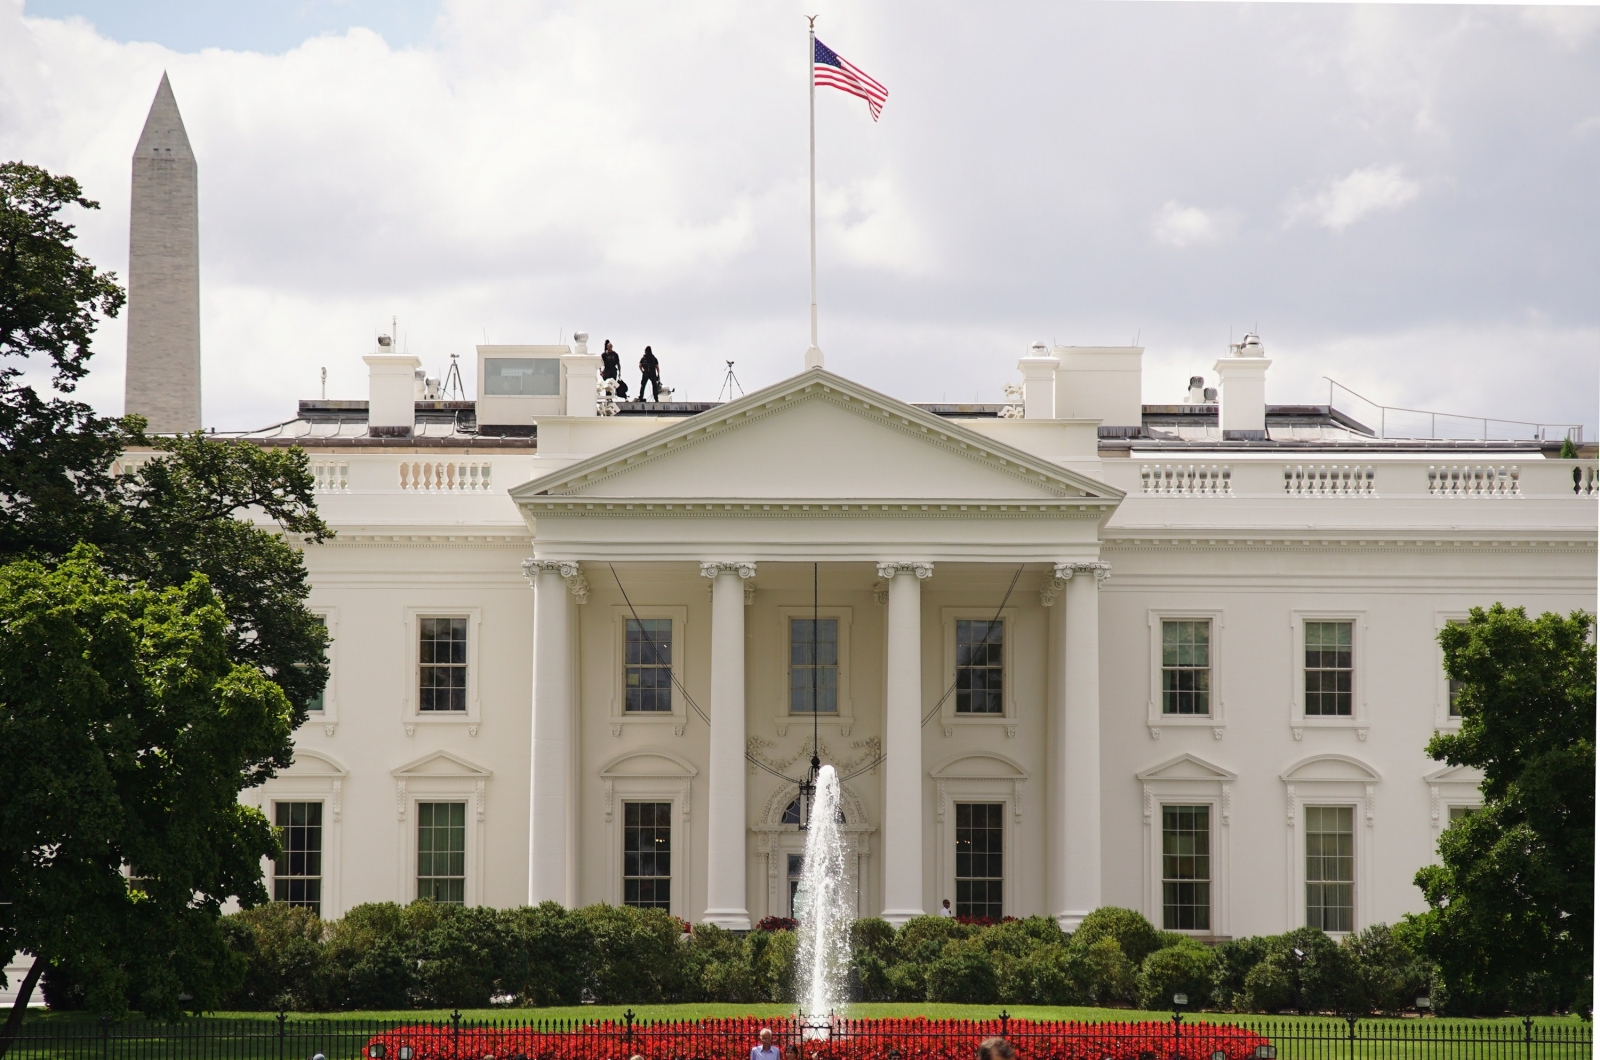 On 24 August 1814, British troops occupied Washington for 26 hours - setting fire to several buildings, including the White House.